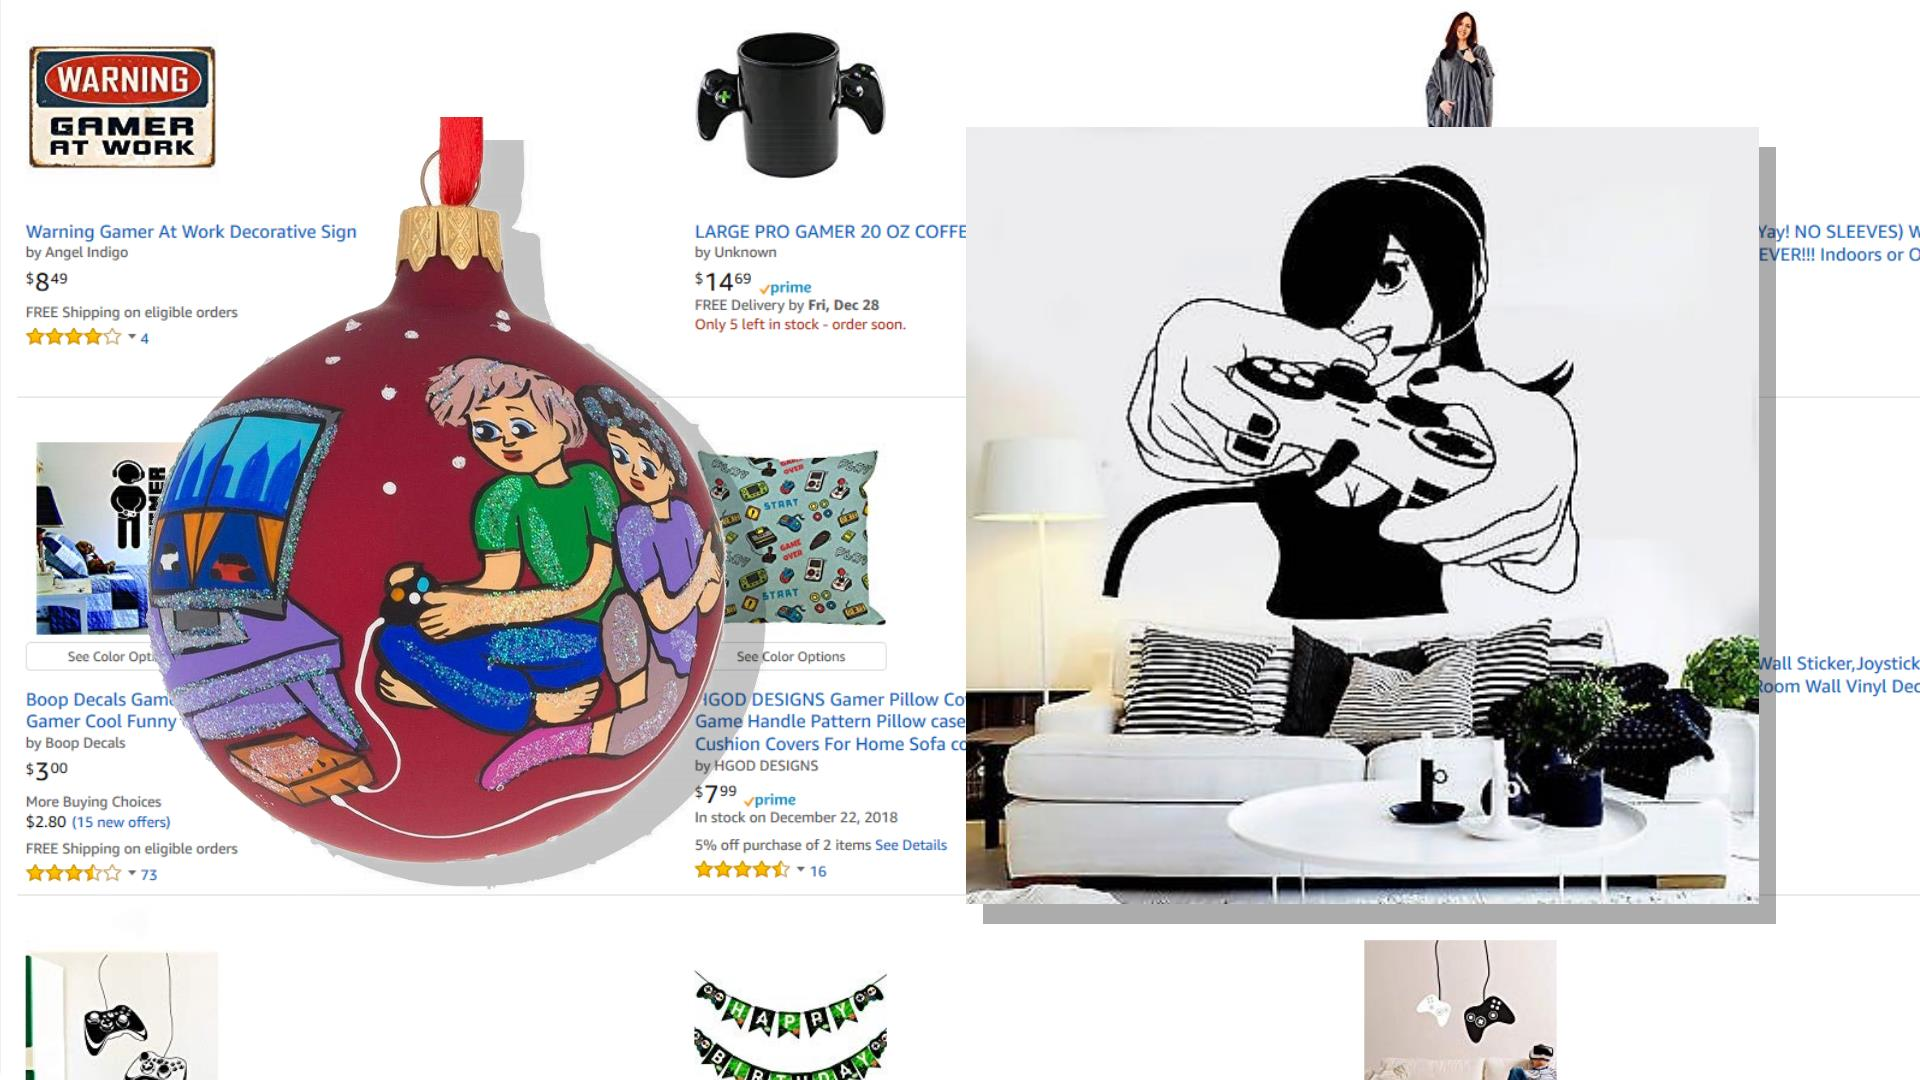 10 More Awful 'Gamer' Gifts from Amazon